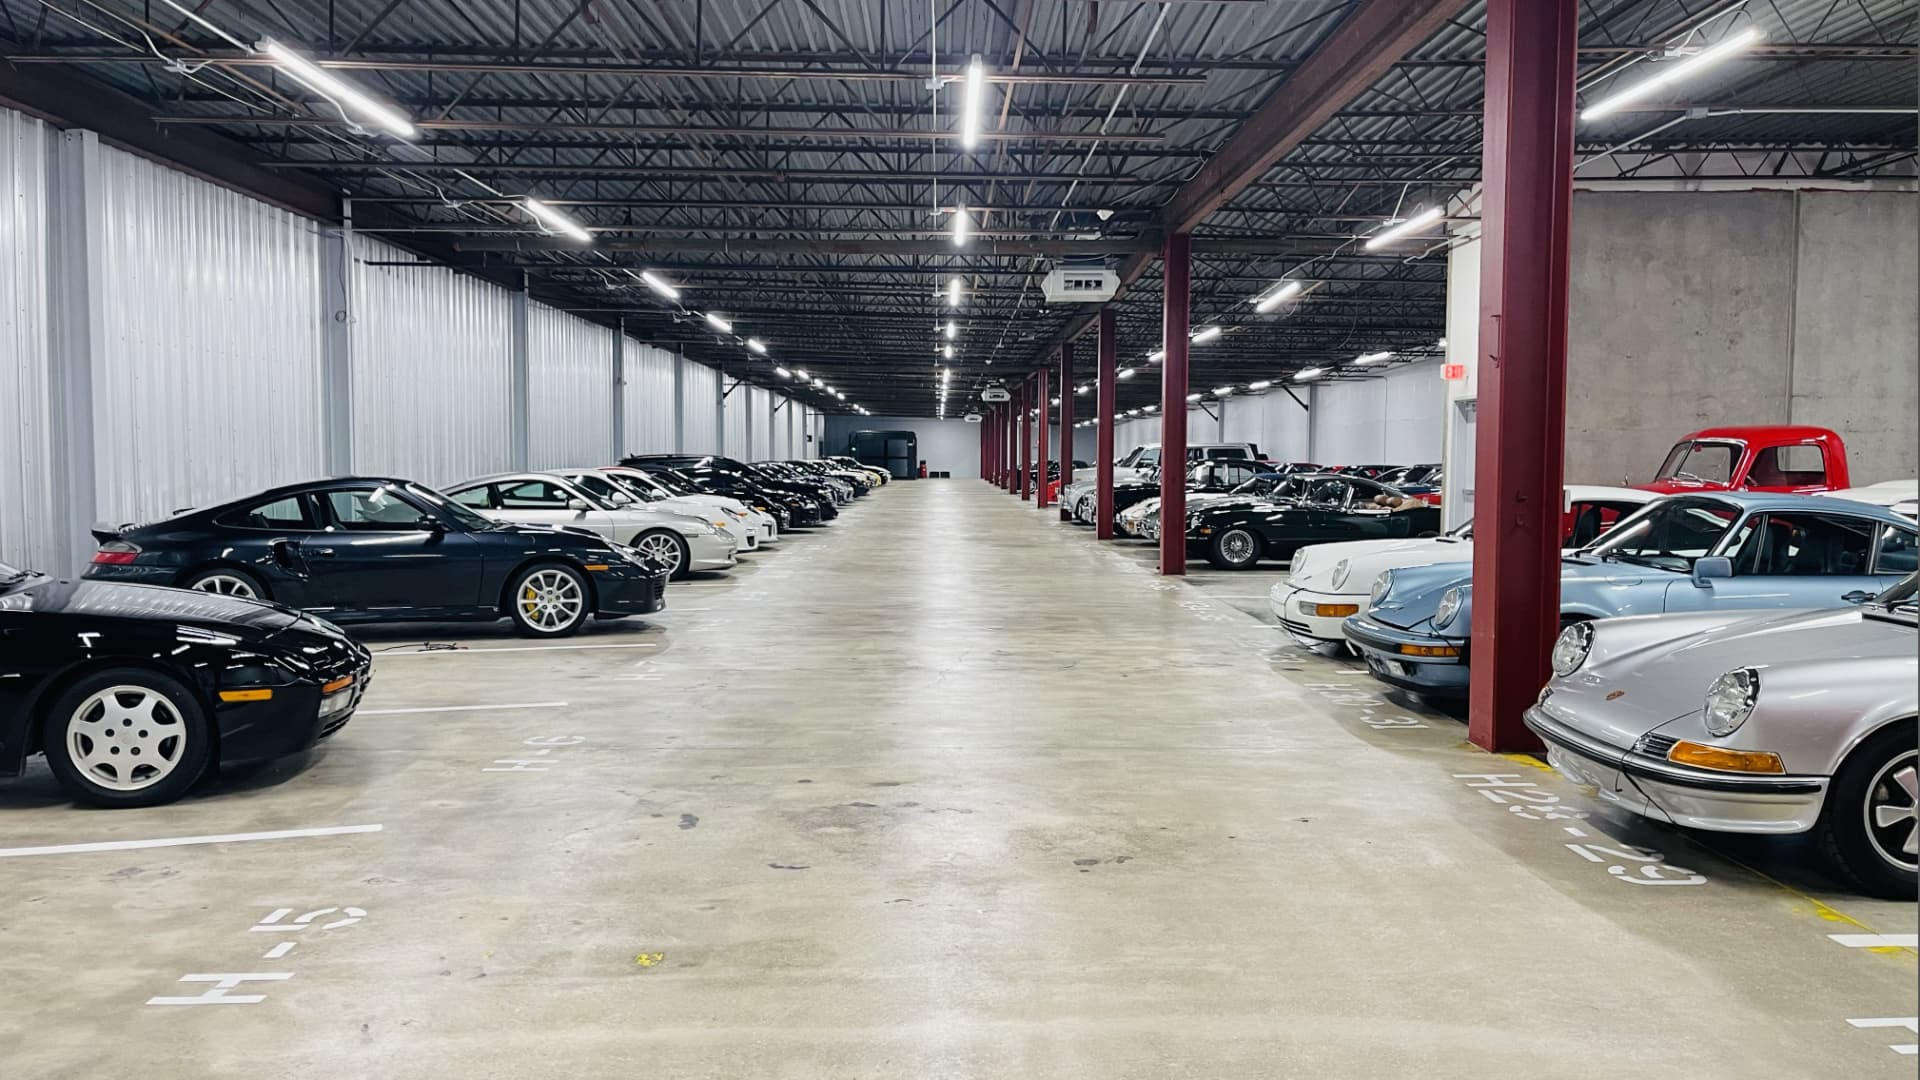 An underground meetup of bitcoin miners and oil & gas execs was held at a 150,000 square-foot warehouse safeguarding high-end vintage cars.